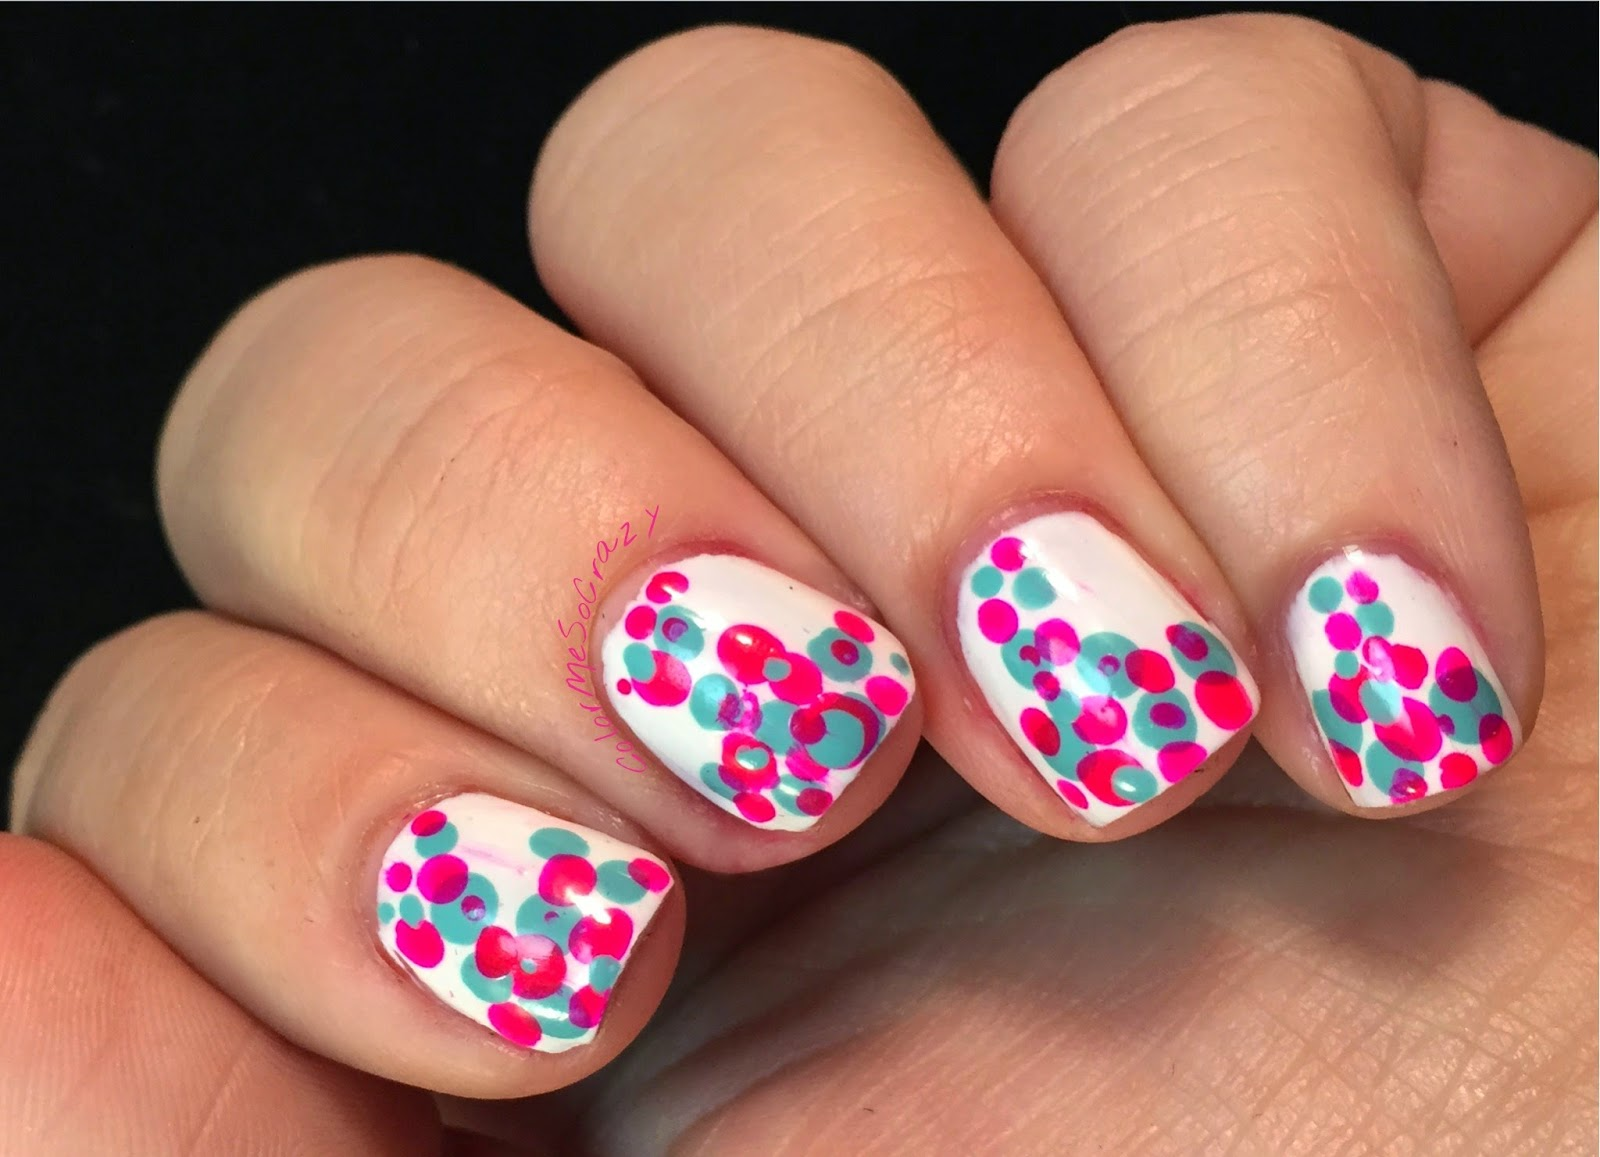 52 Week Challenge Presents Dotting Tools and Pink and Aqua